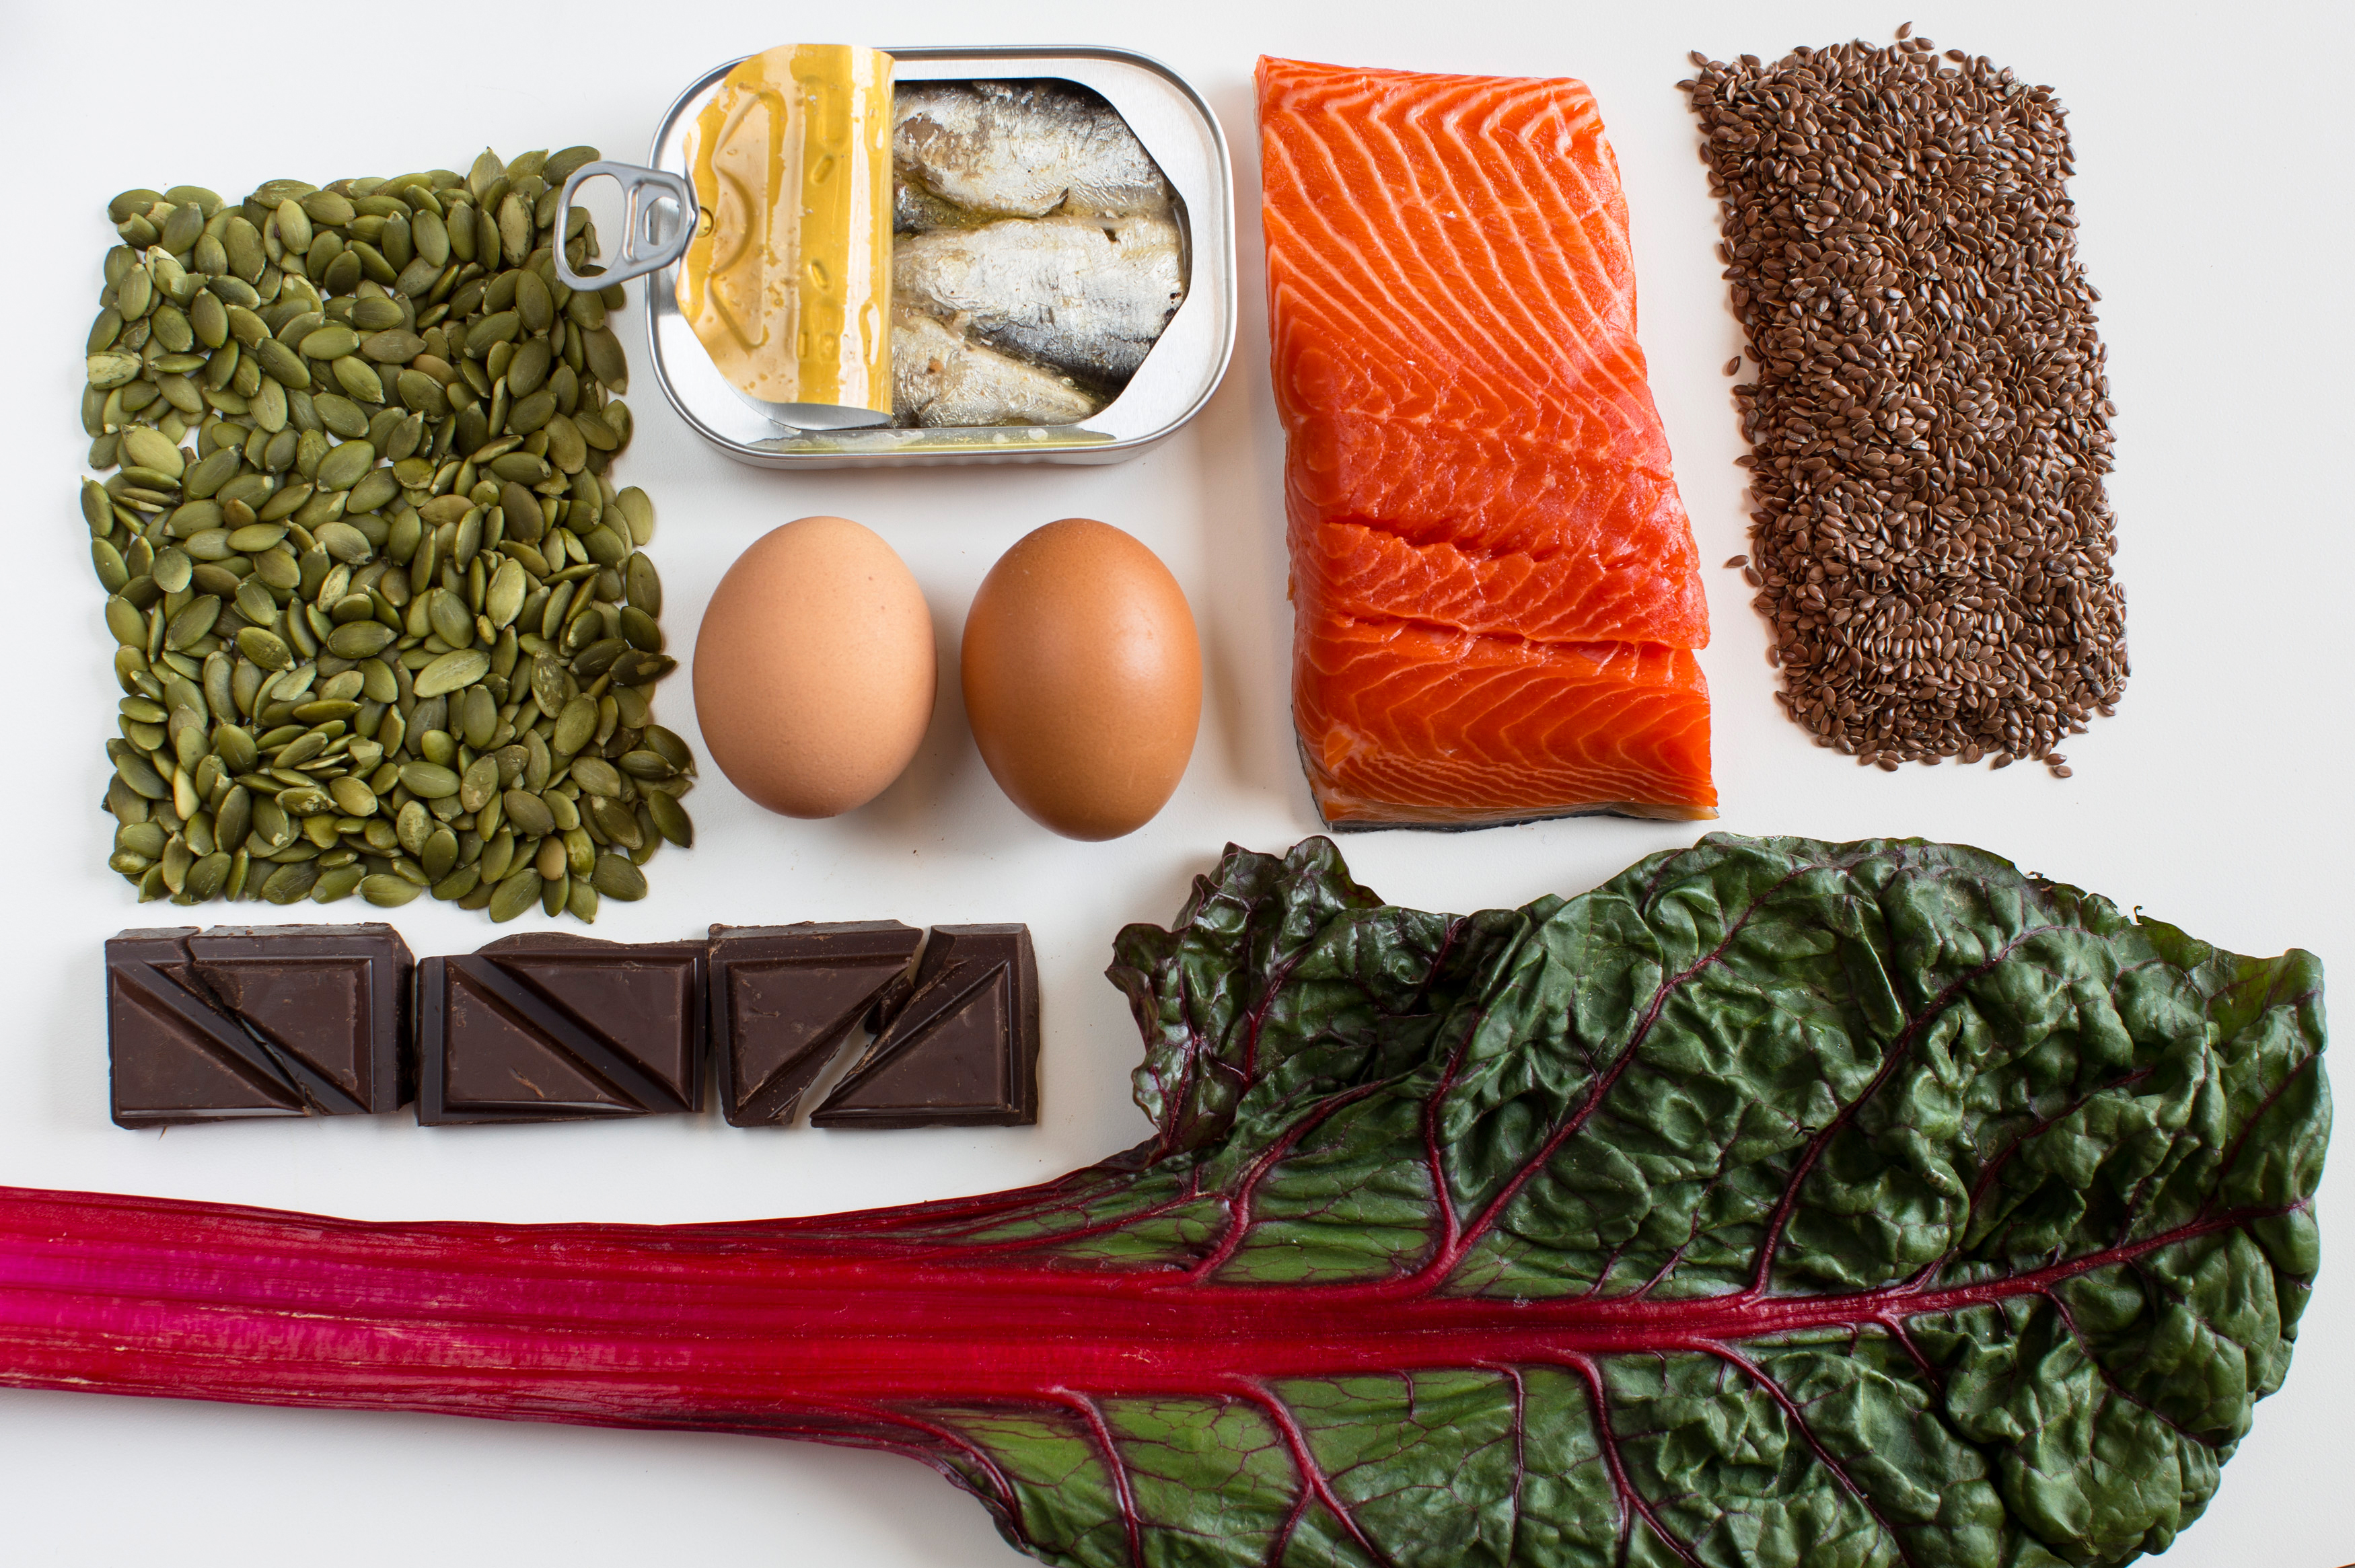 A nutrient-dense diet may help tamp down stress. And these foods may help boost our moods (clockwise from left): pumpkin seeds, sardines, eggs, salmon, flax seeds, Swiss chard and dark chocolate. Photo: Meredith Rizzo/NPR